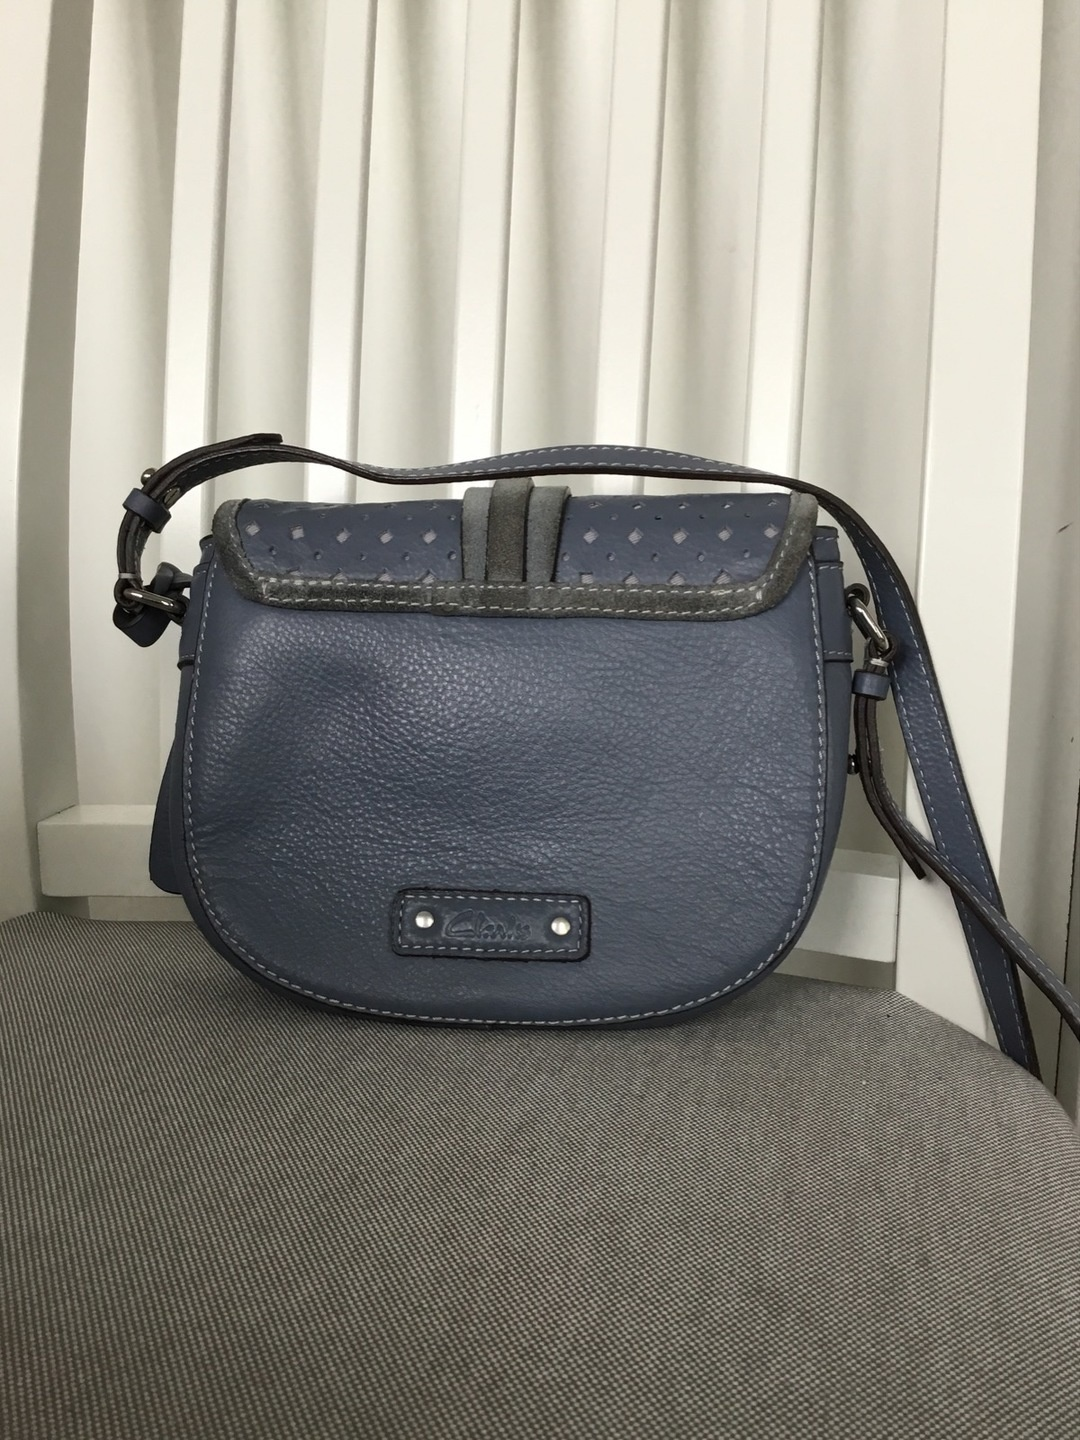 Women's bags & purses - CLARKS photo 2